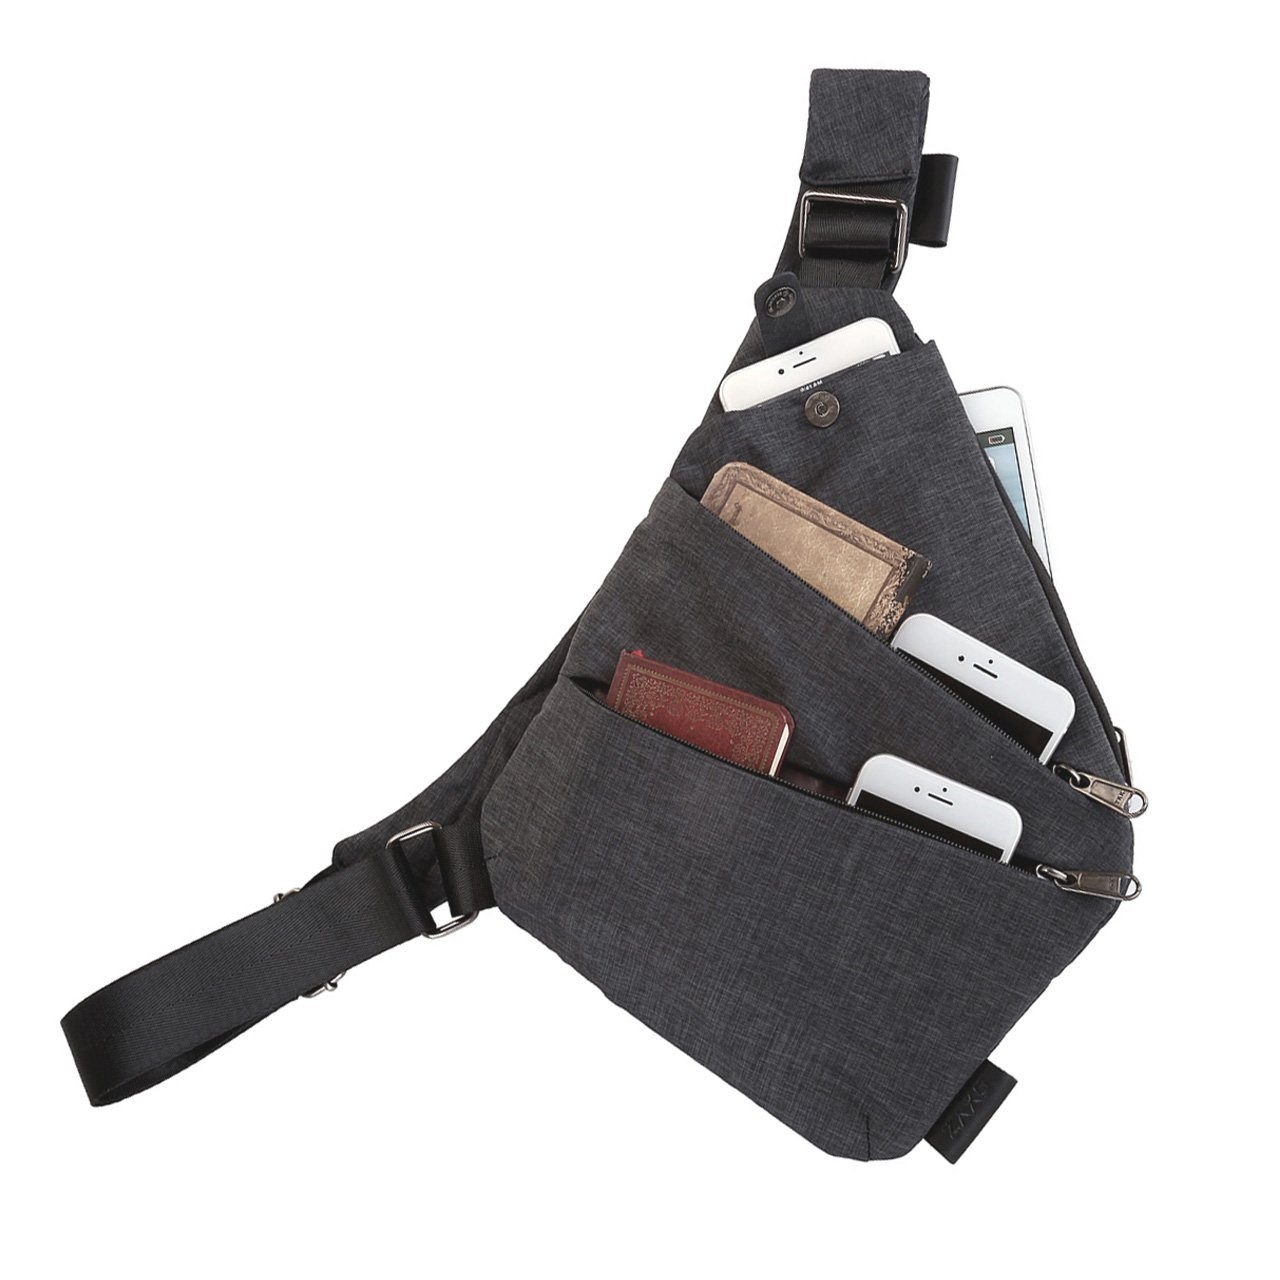 FALETO Anti-Thief Sling Bag Chest Hidden Security Crossbody Shoulder Backpack